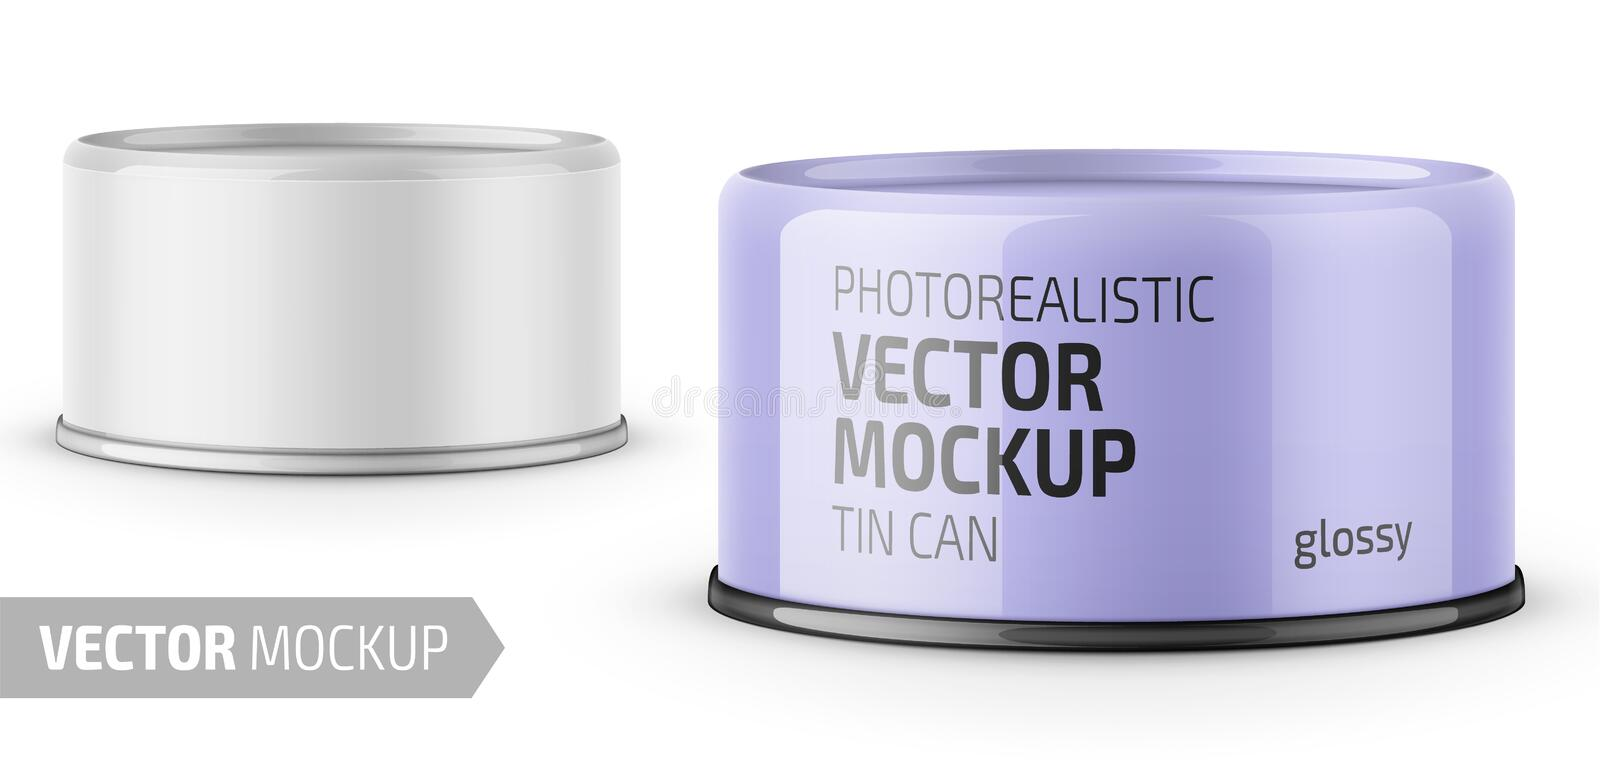 Tuna can with label and sample design. stock illustration